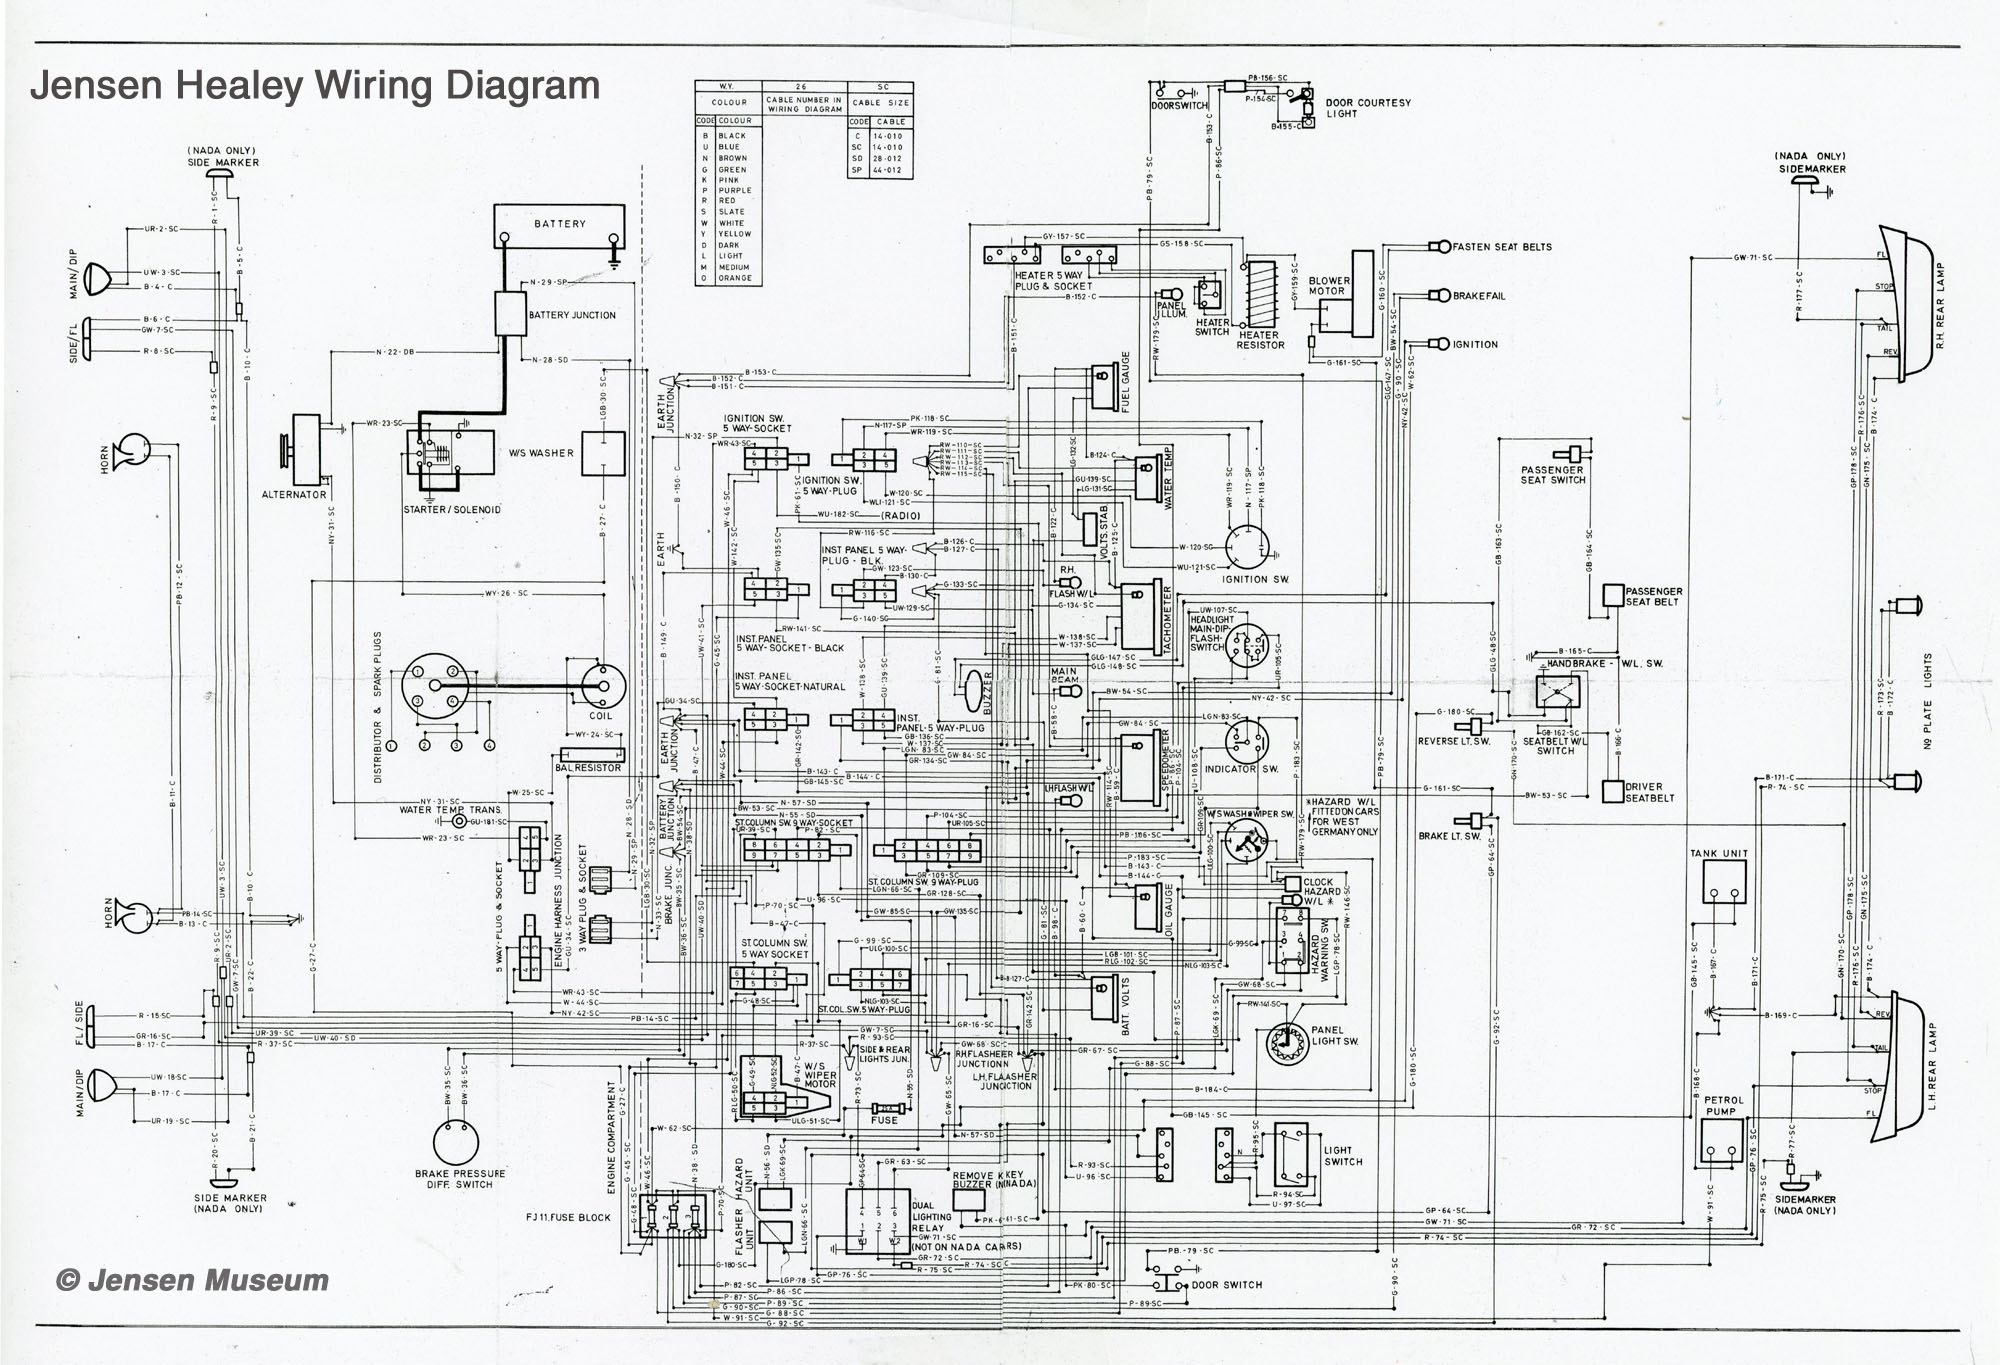 Jensen Healey Wiring Diagram Archive Of Automotive Fieldserver The Museum Rh Jensenmuseum Org